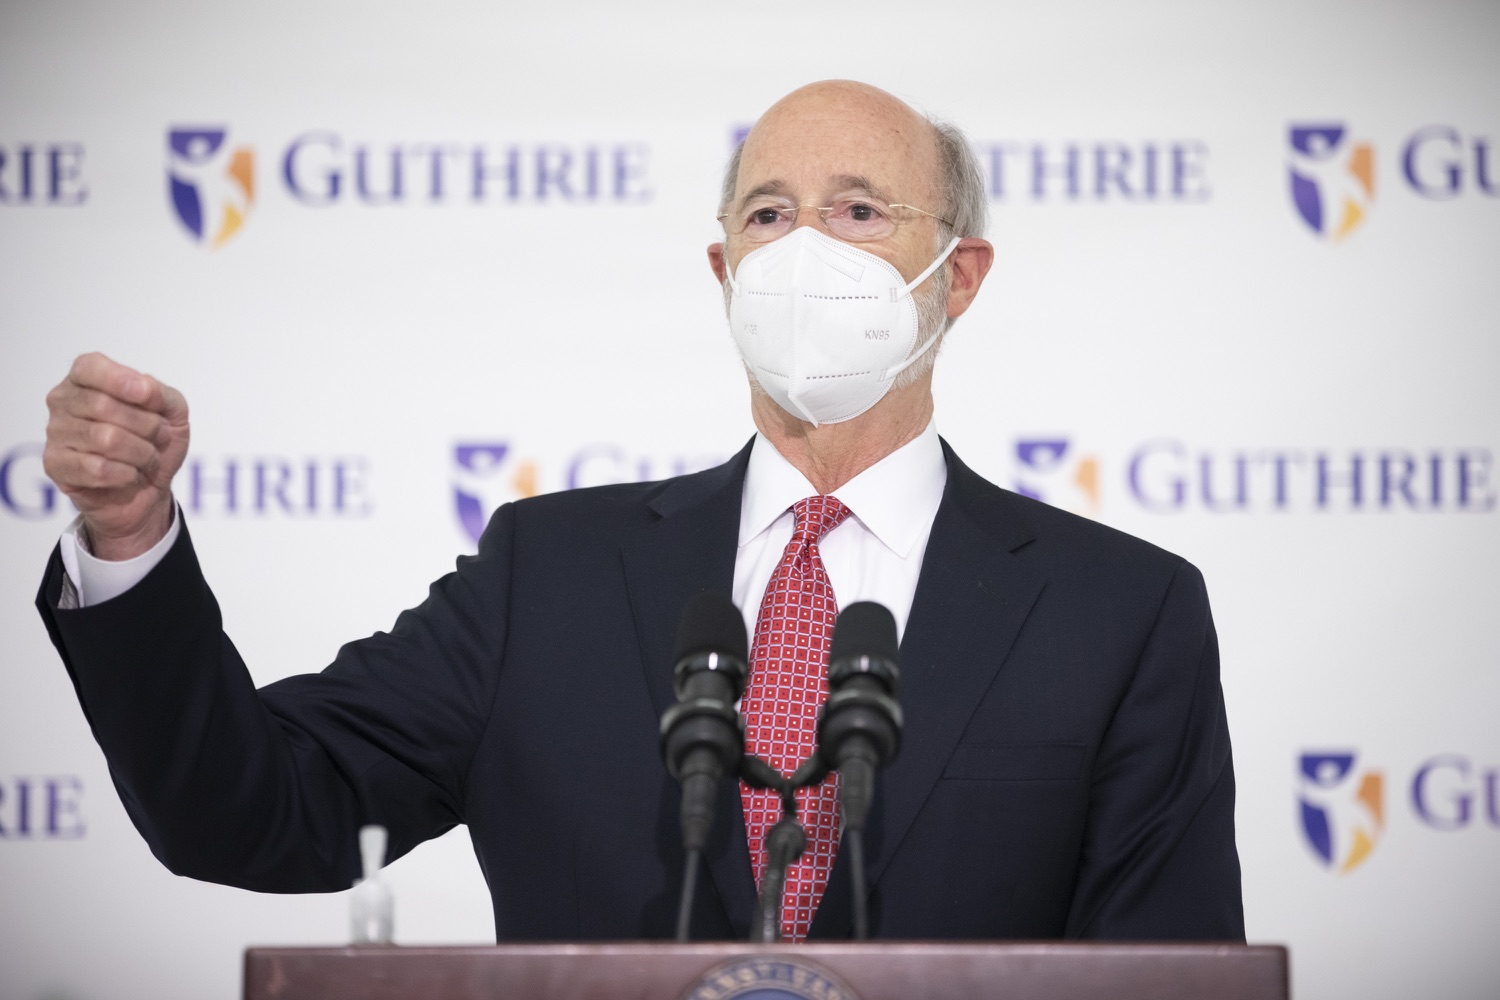 """<a href=""""https://filesource.wostreaming.net/commonwealthofpa/photo/18682_gov_vaccineClinic_dz_017.jpg"""" target=""""_blank"""">⇣Download Photo<br></a>Pennsylvania Governor Tom Wolf speaking with the press.  Governor Tom Wolf today visited the Guthrie Health vaccine clinic in Sayre, Bradford County today to tour this clinic providing vaccines to a large swath of rural residents and to talk about progress in vaccinating Pennsylvanians now that eligibility is open to all individuals age 16 and older.  Sayre, PA   April 21, 2021"""